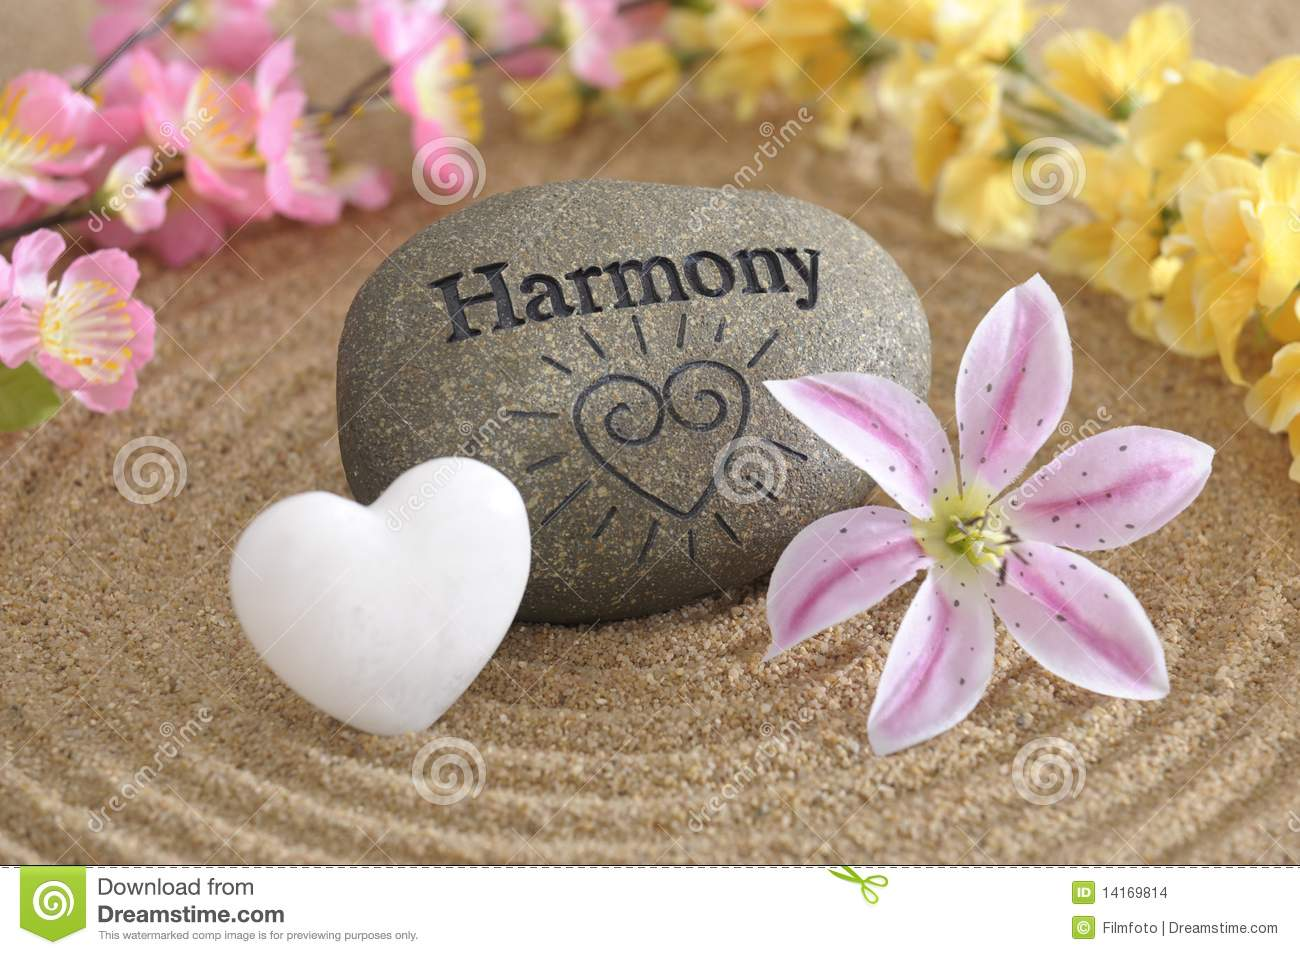 Zen Garden In Harmony Stock Images - Image: 14169814